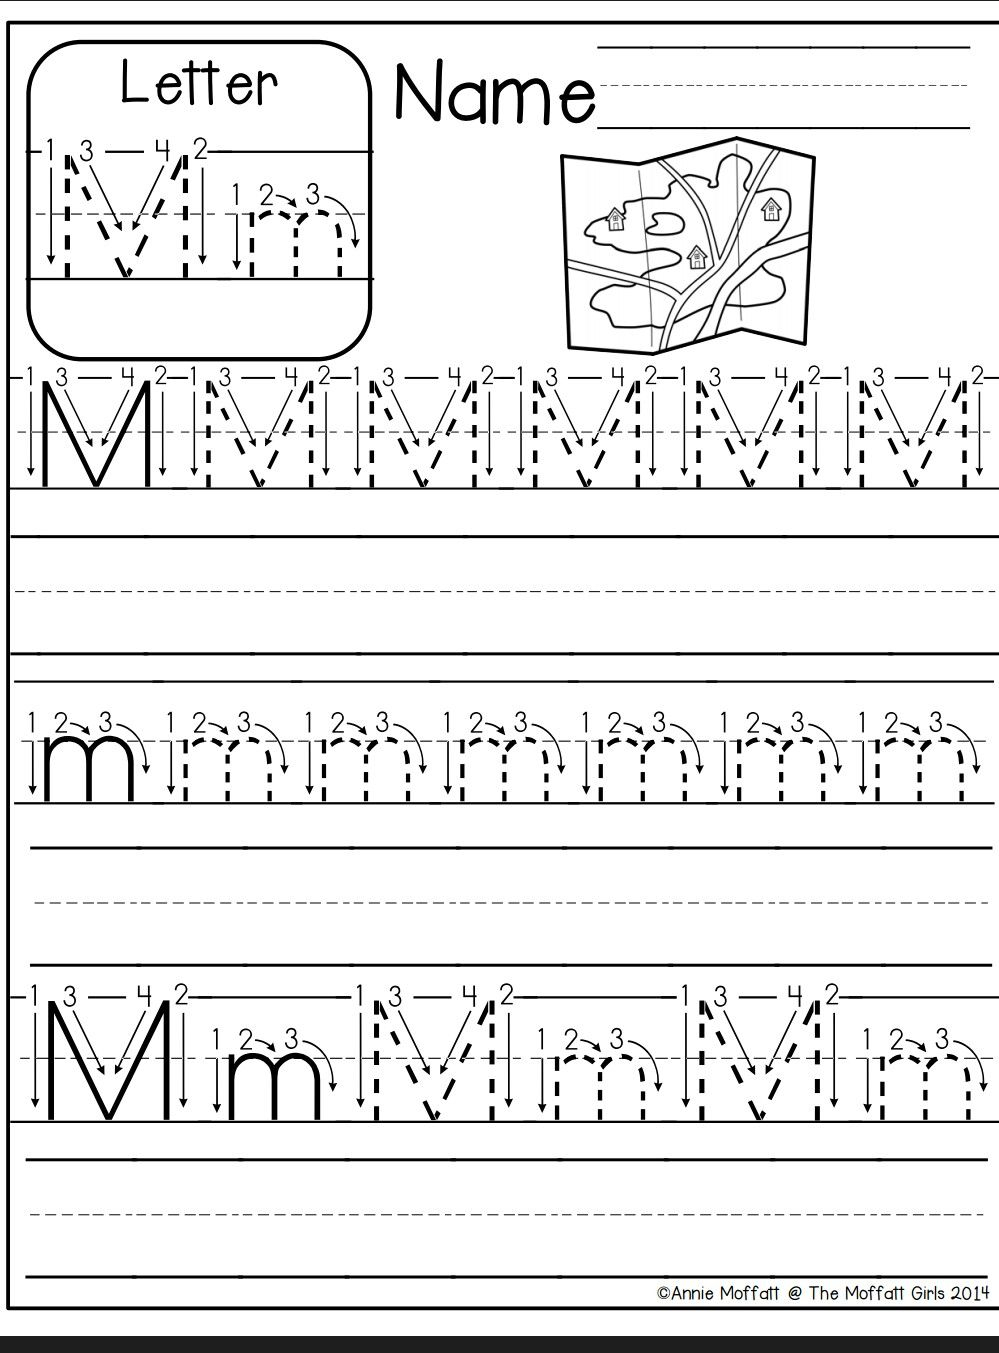 Letter Worksheet Alphabet Worksheets Preschool For Learning in Alphabet Worksheets Esl Pdf